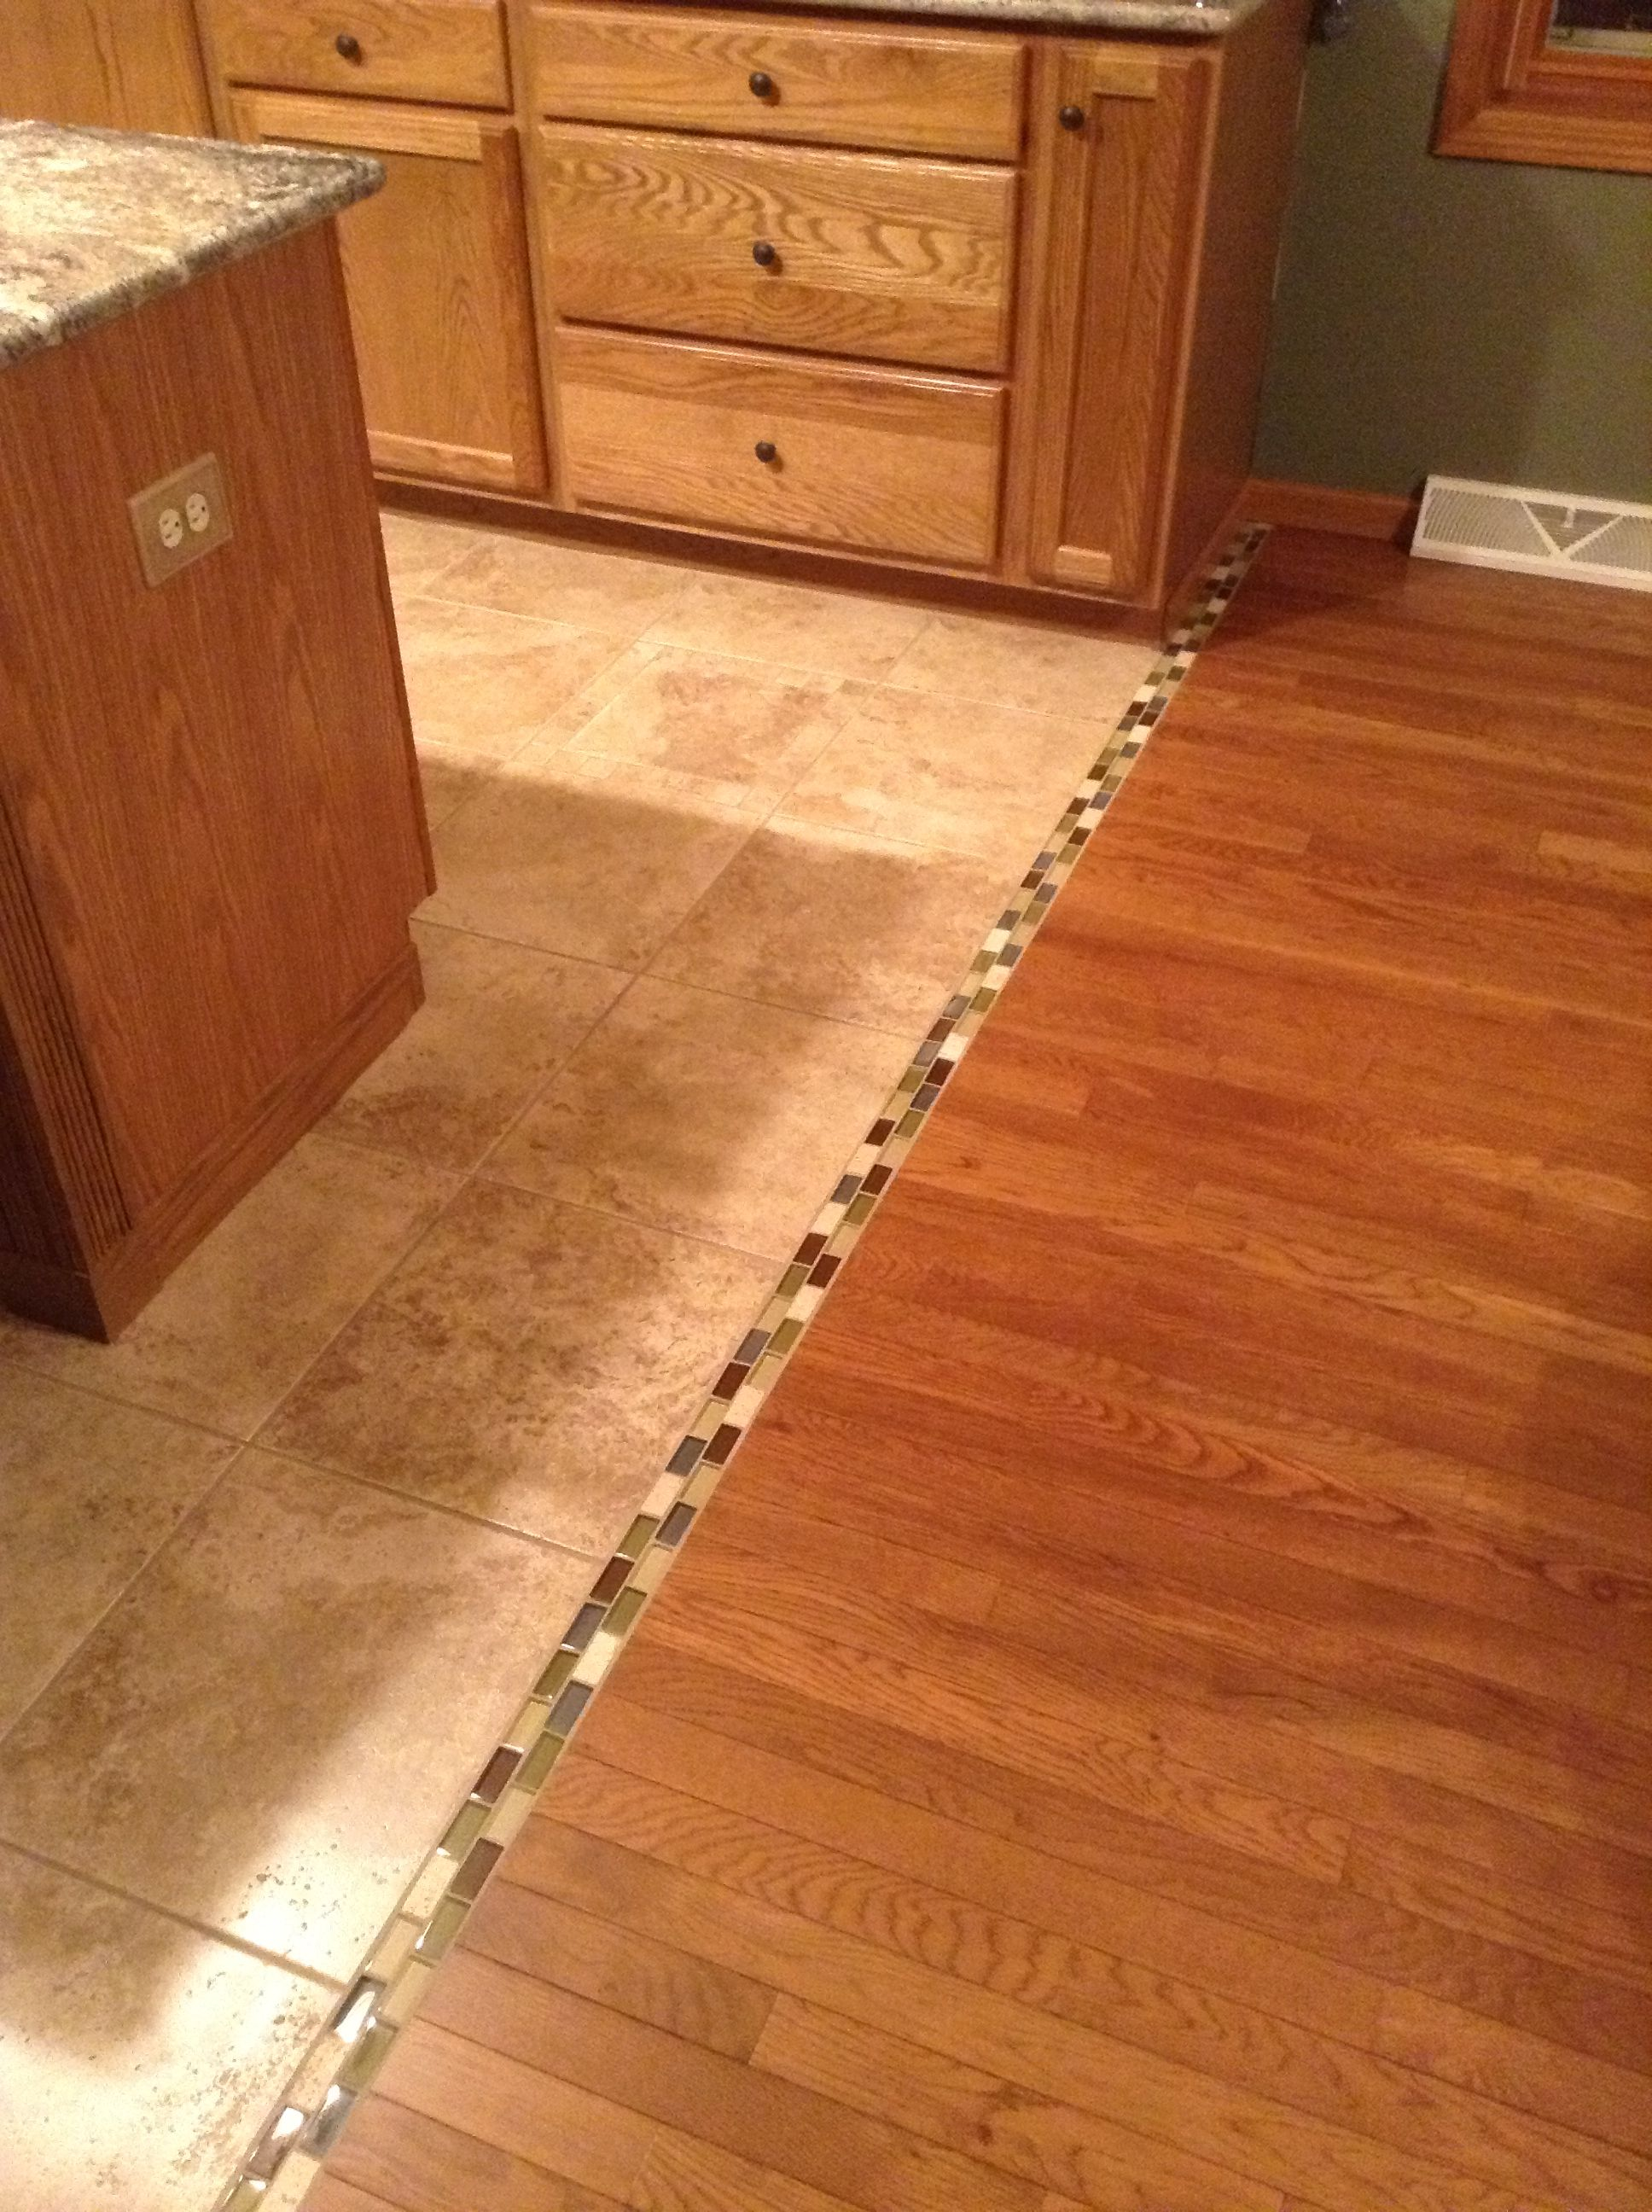 Transition between hardwood and tile floor we should do this transition between hardwood and tile floor we should do this sooooo much dailygadgetfo Image collections